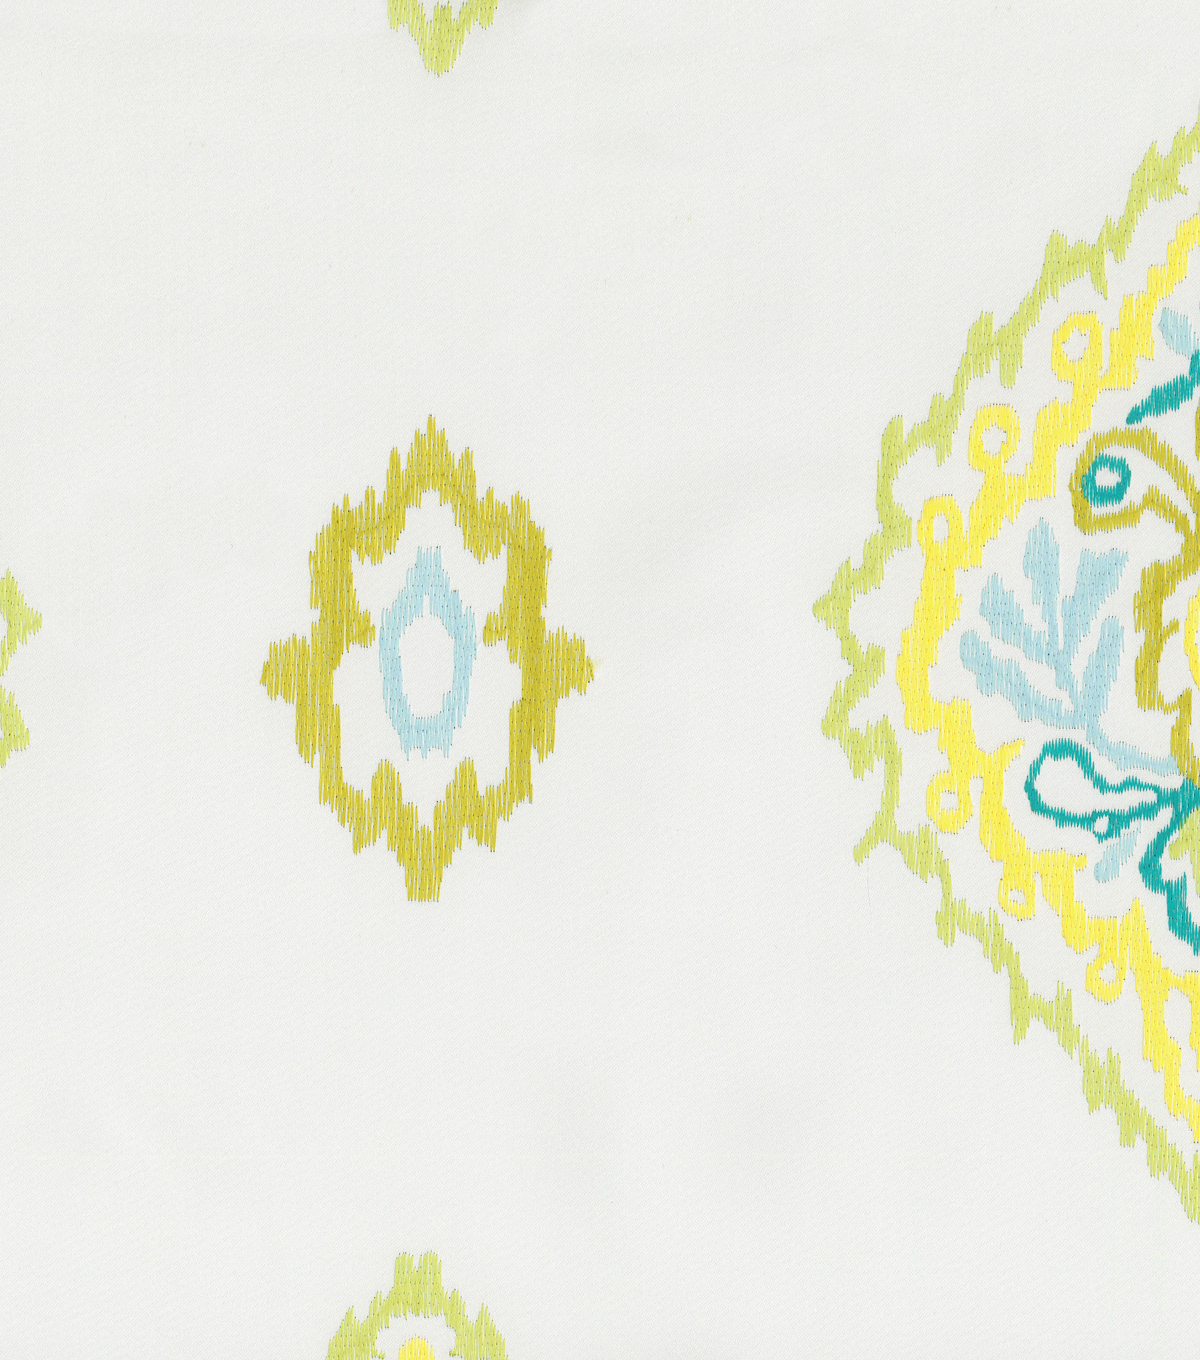 Home Decor 8\u0022x8\u0022 Fabric Swatch-Dena Wishful Embroidery Citrus